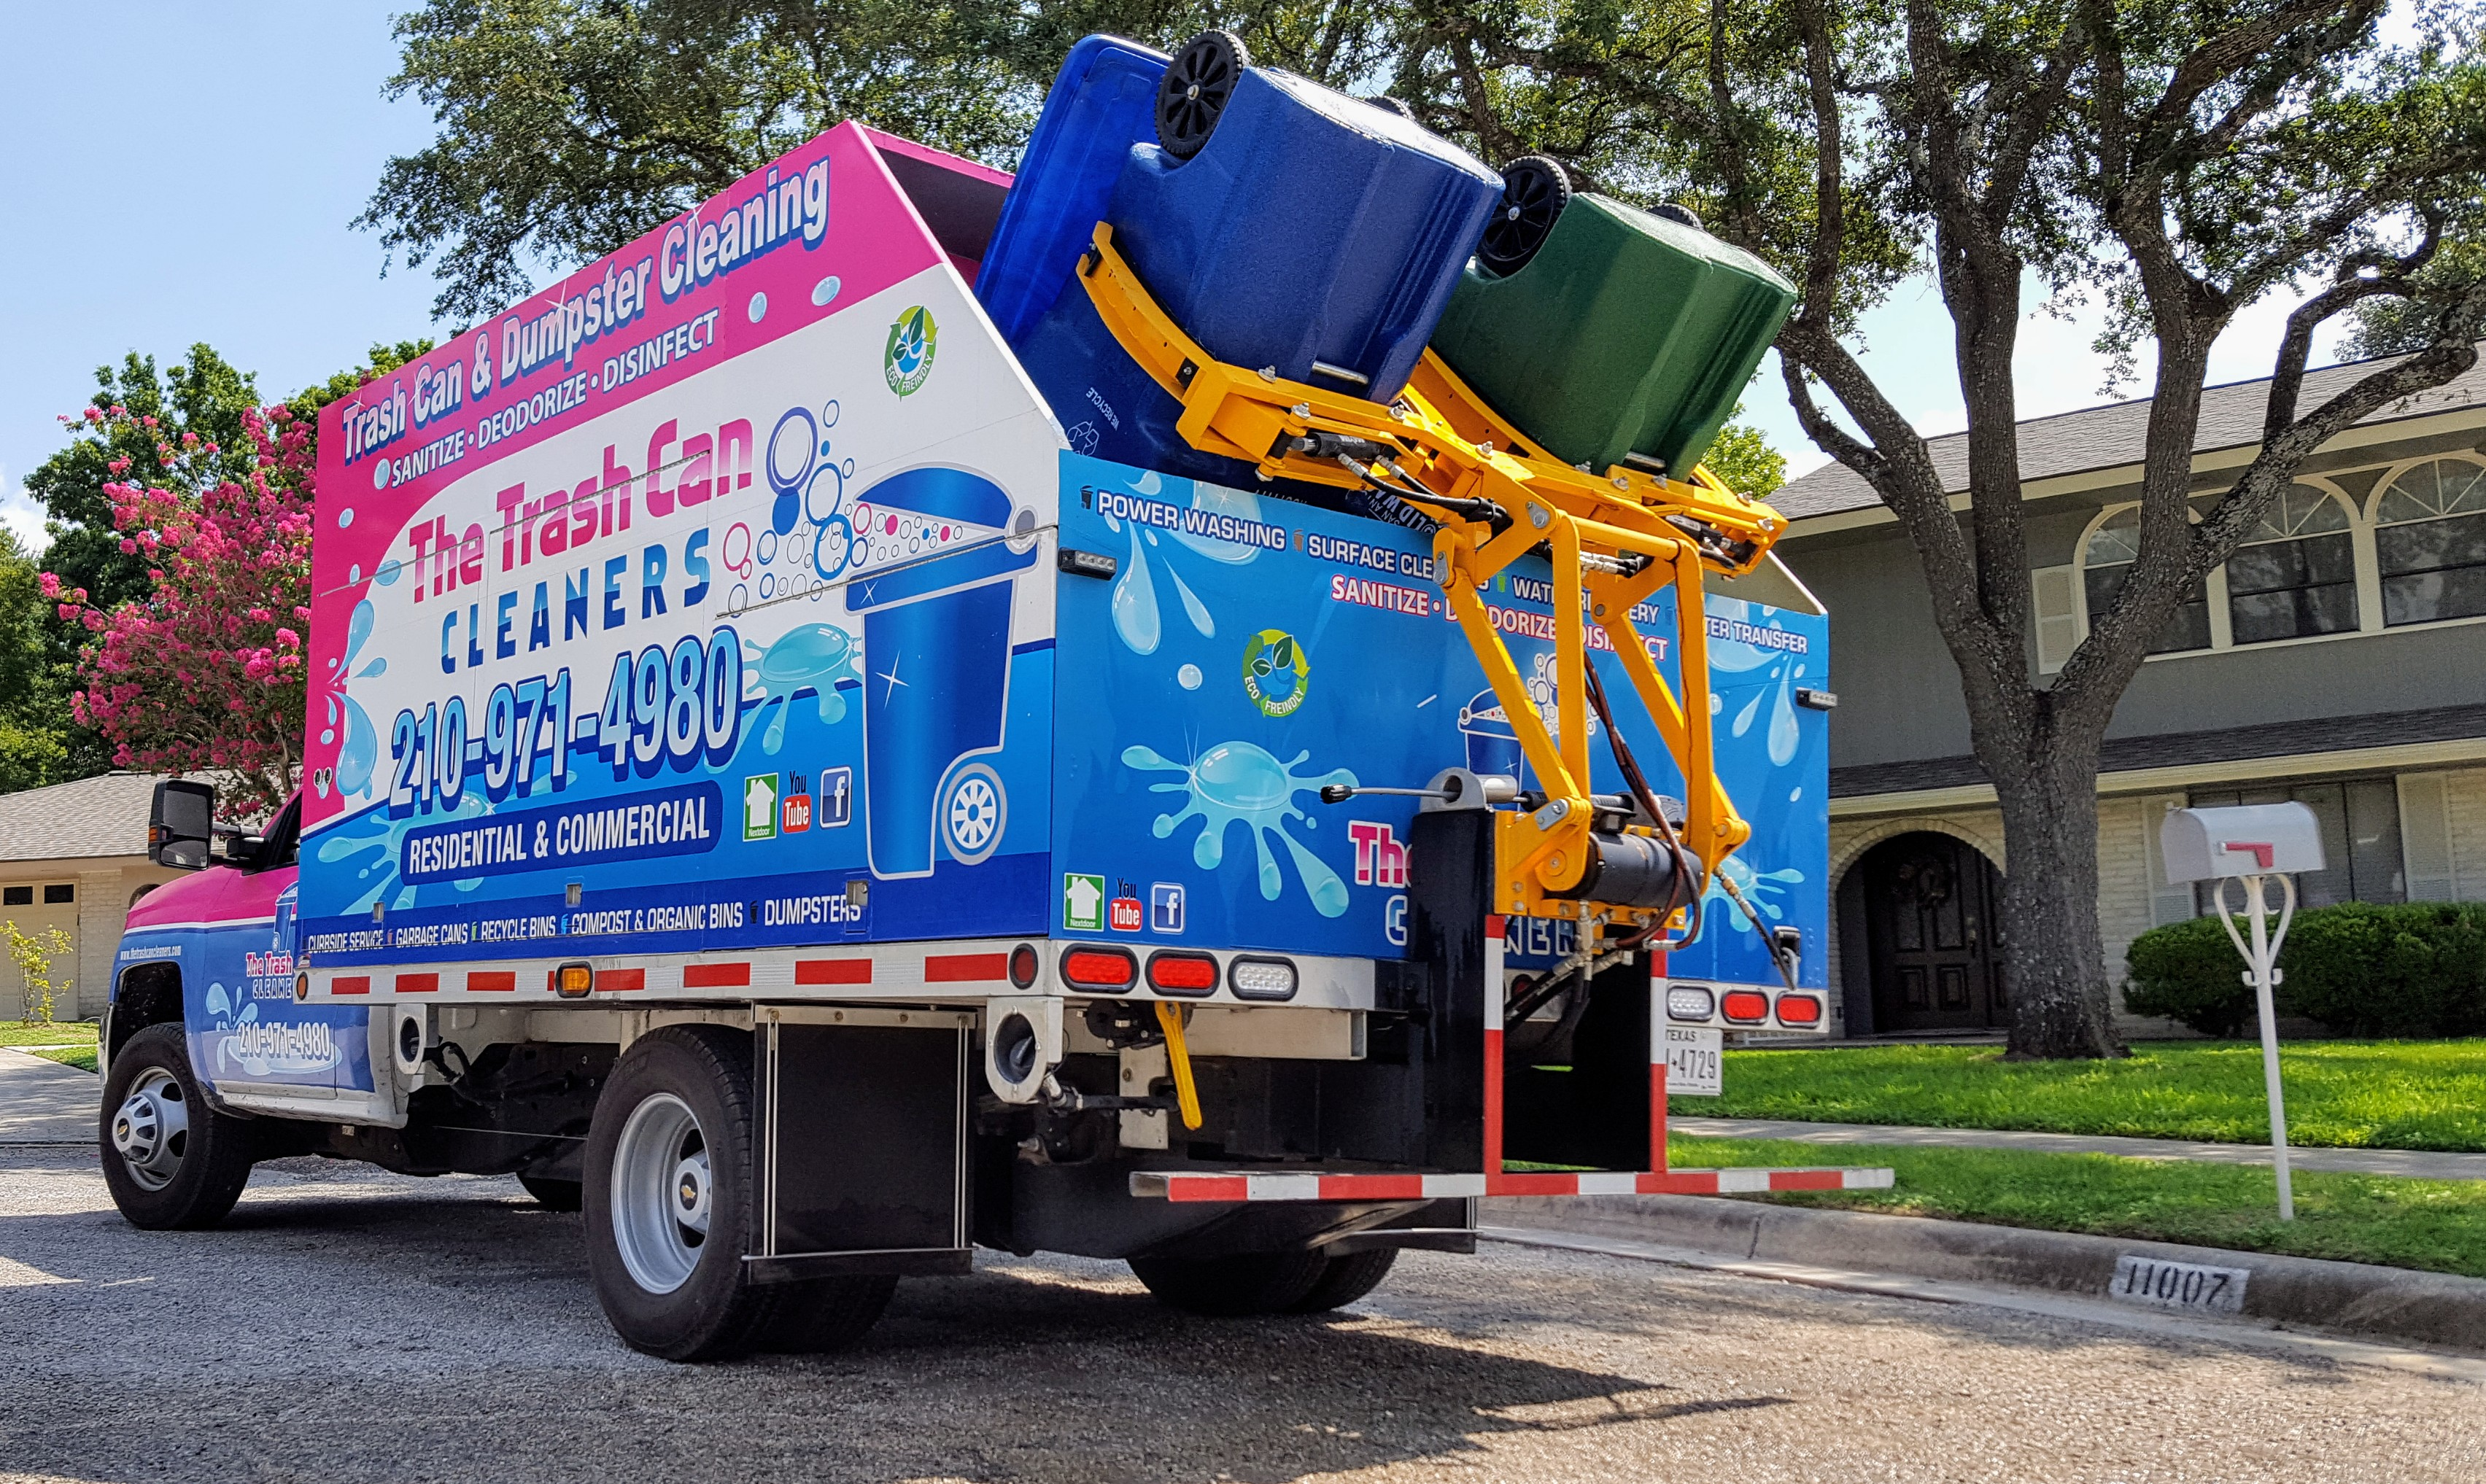 A Mobile Trash Can Cleaning Service Has Hit San Antonios